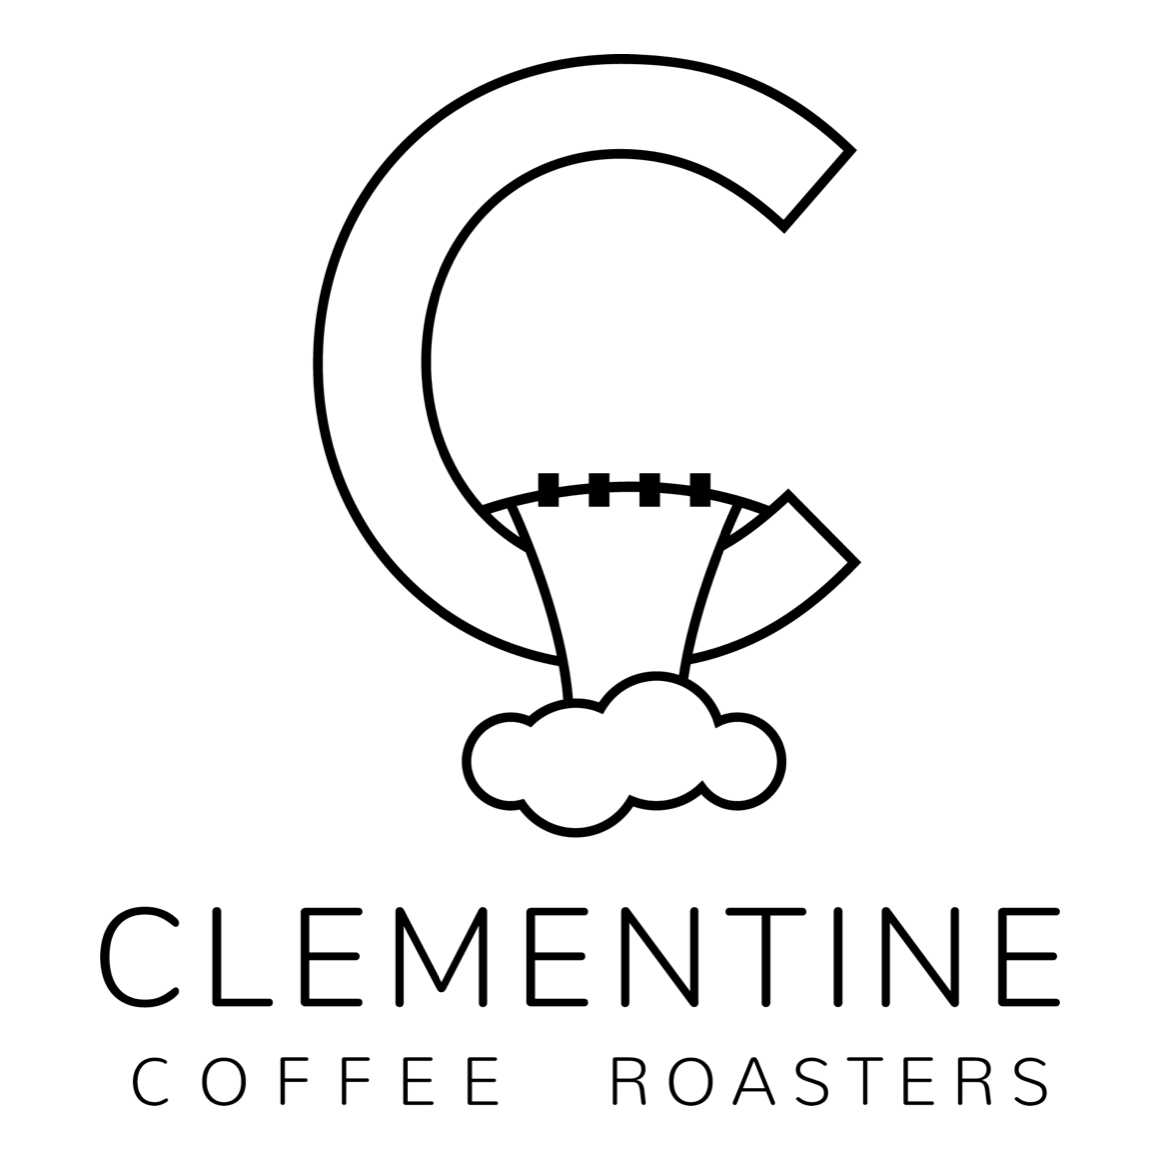 Clementine Coffee Roasters